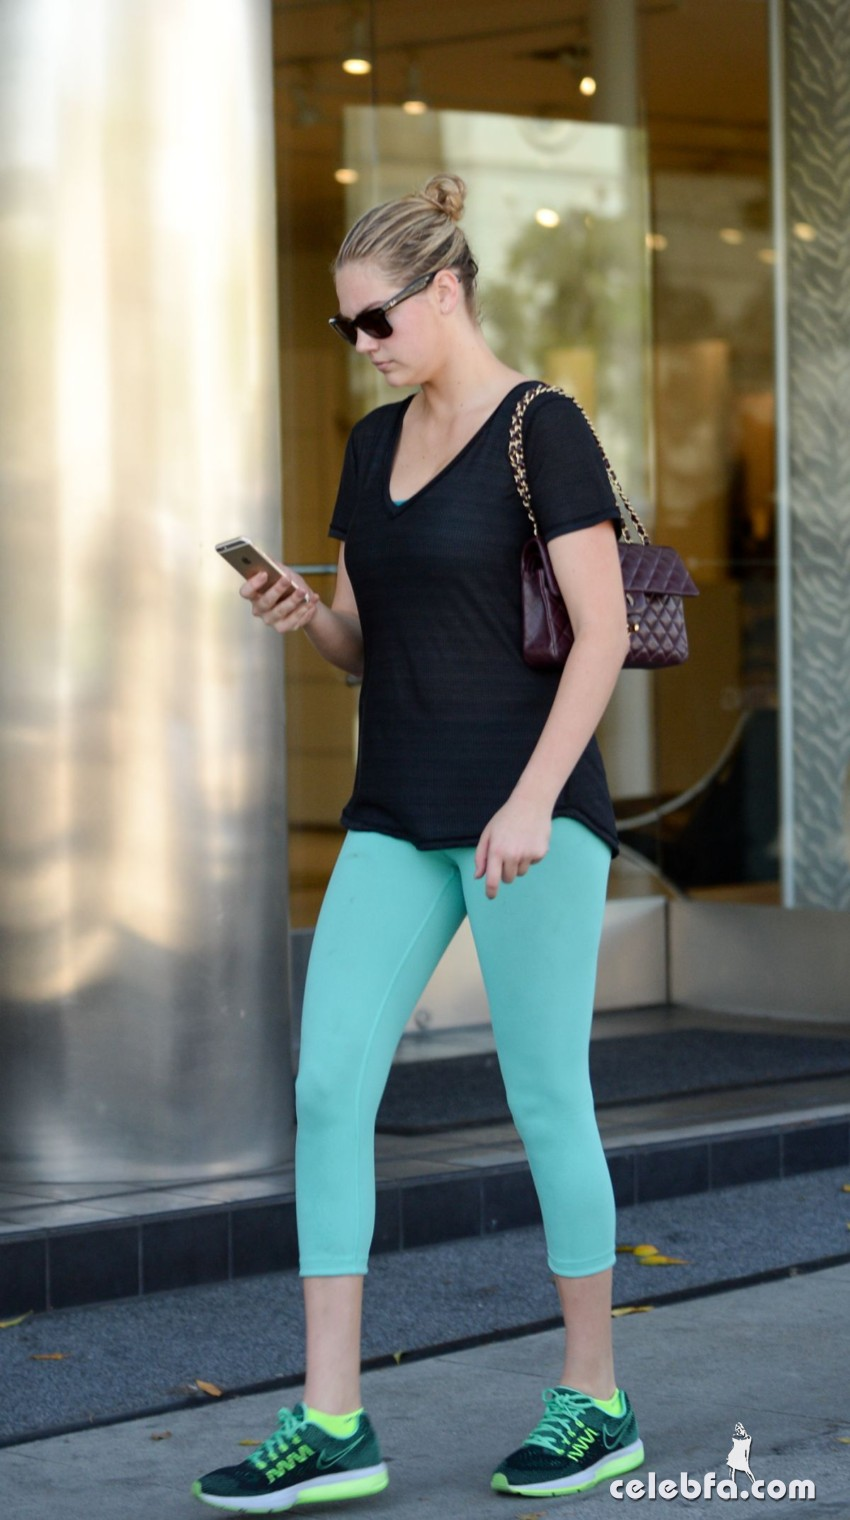 kate-upton-leaves-a-gym-in-west-hollywood (2)